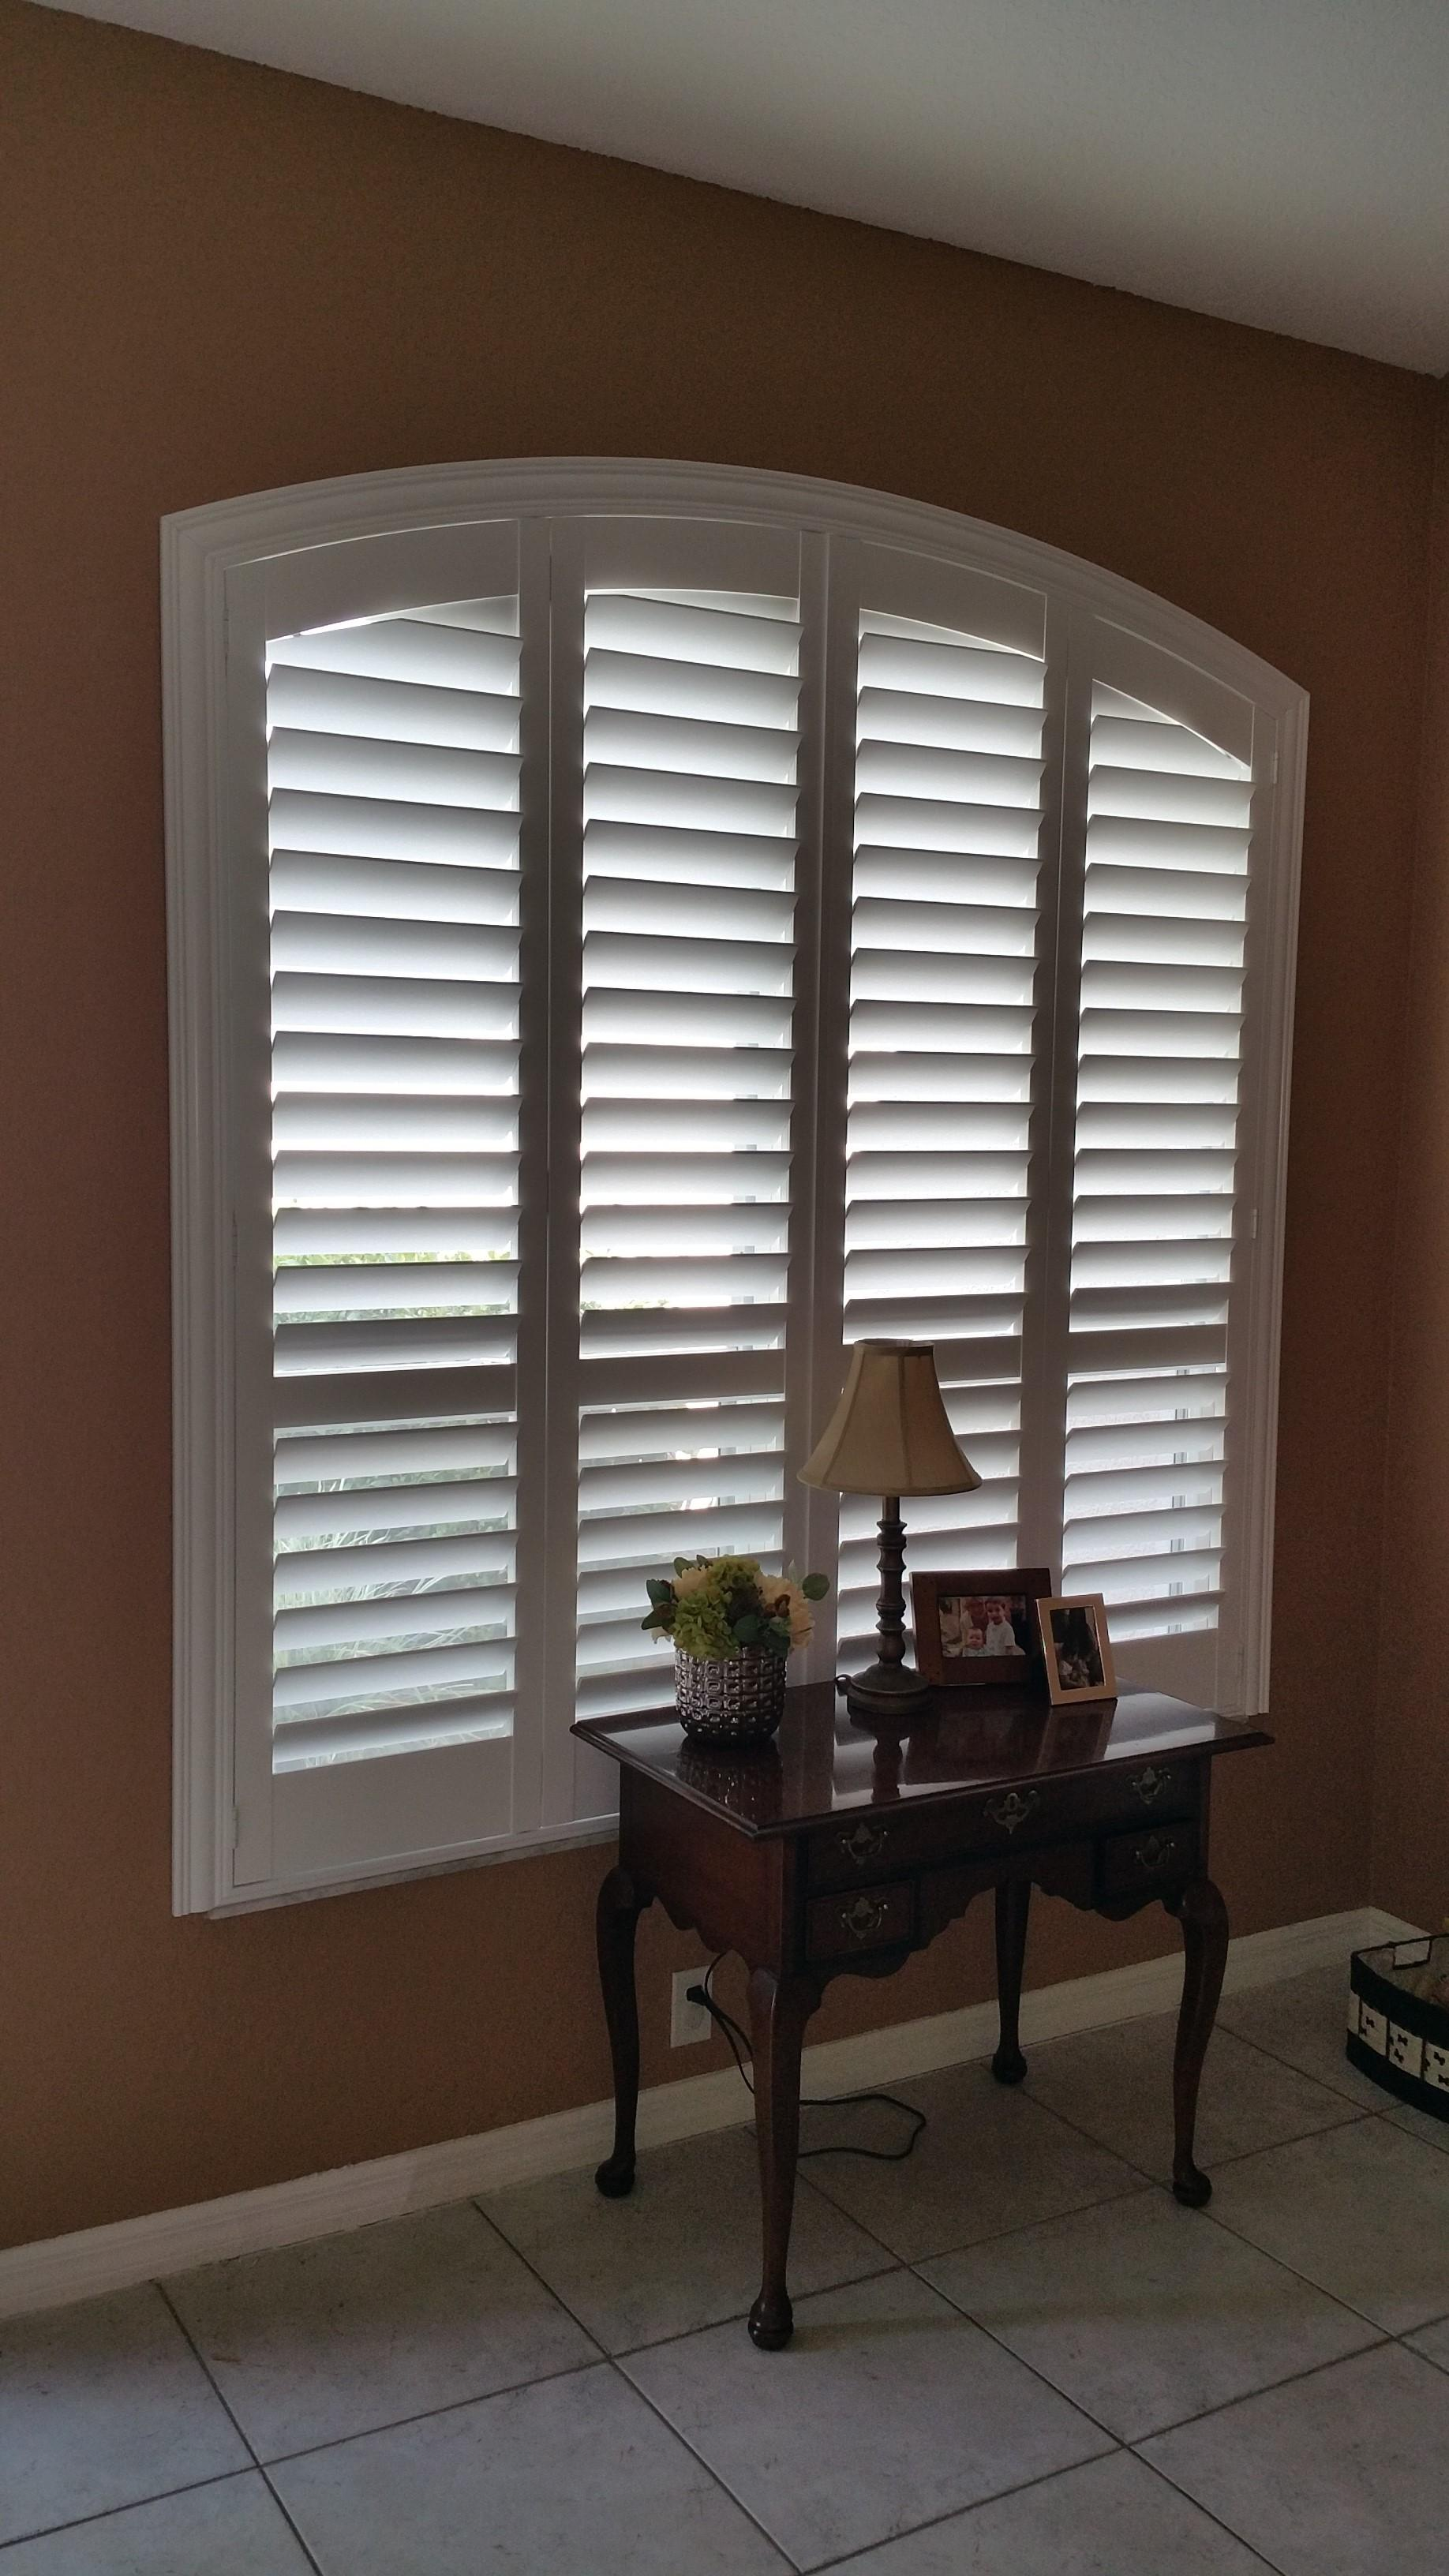 Budget Blinds In Tampa Fl 813 344 2